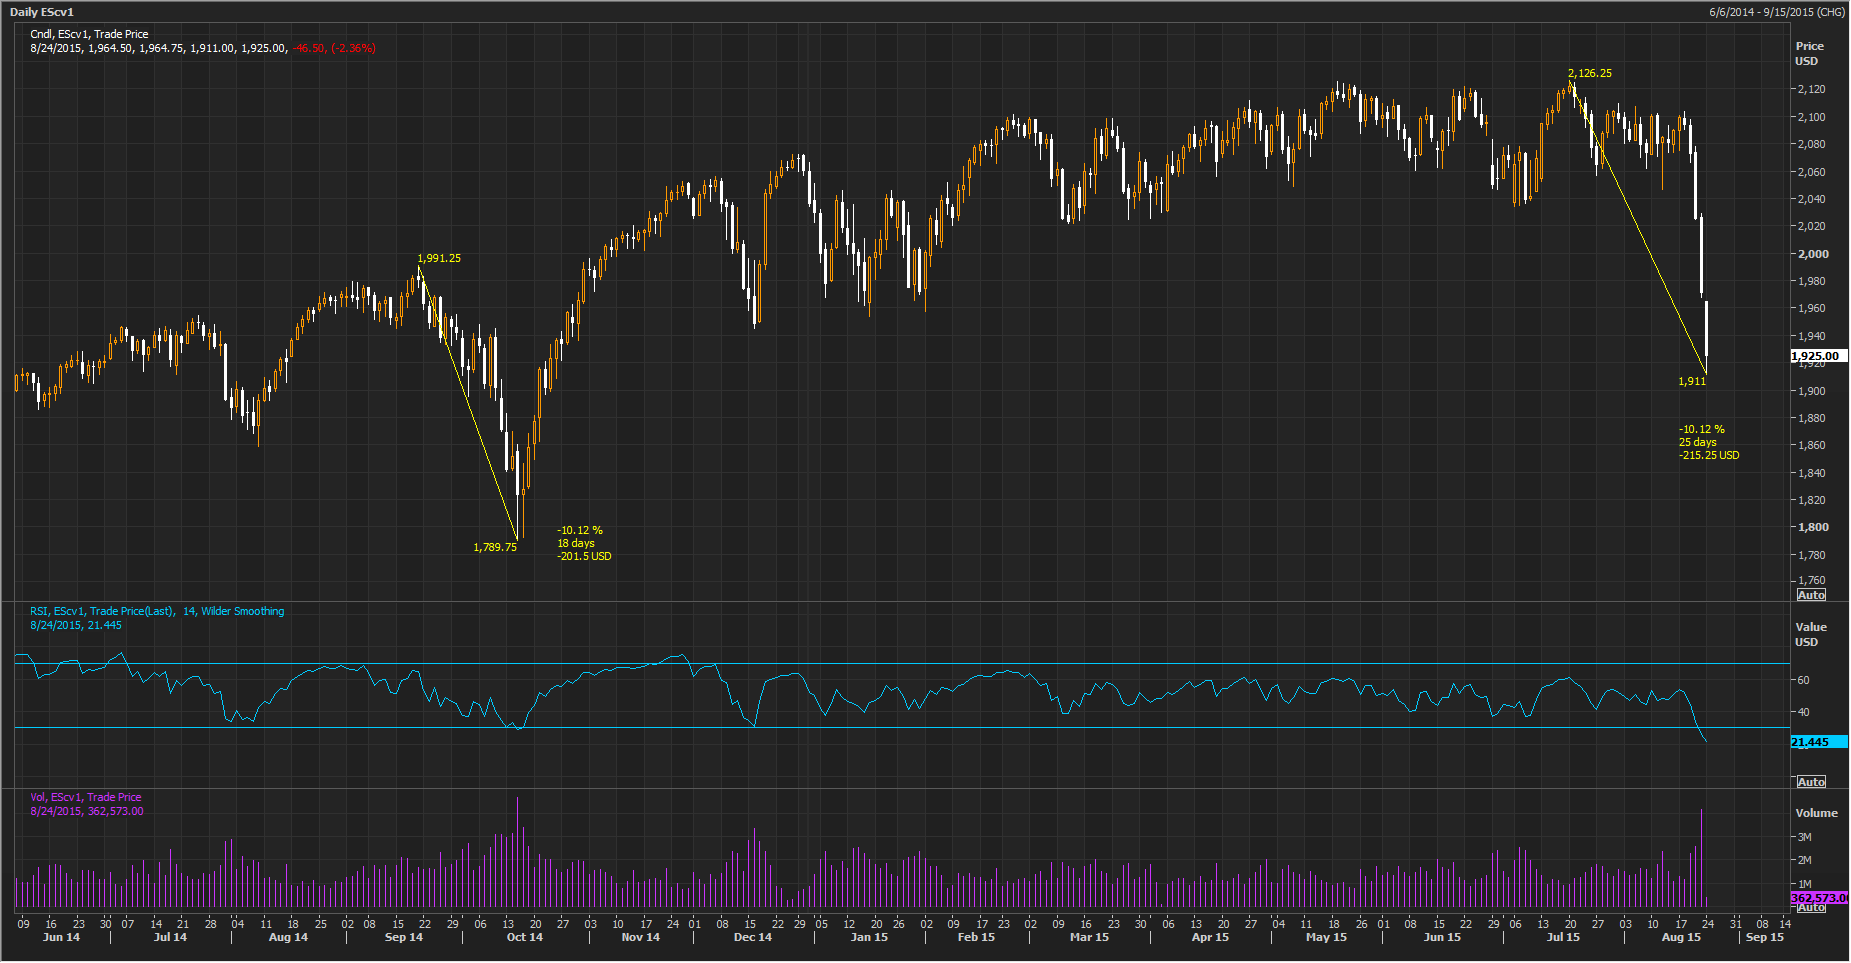 SPX Worried on Global Slow Down